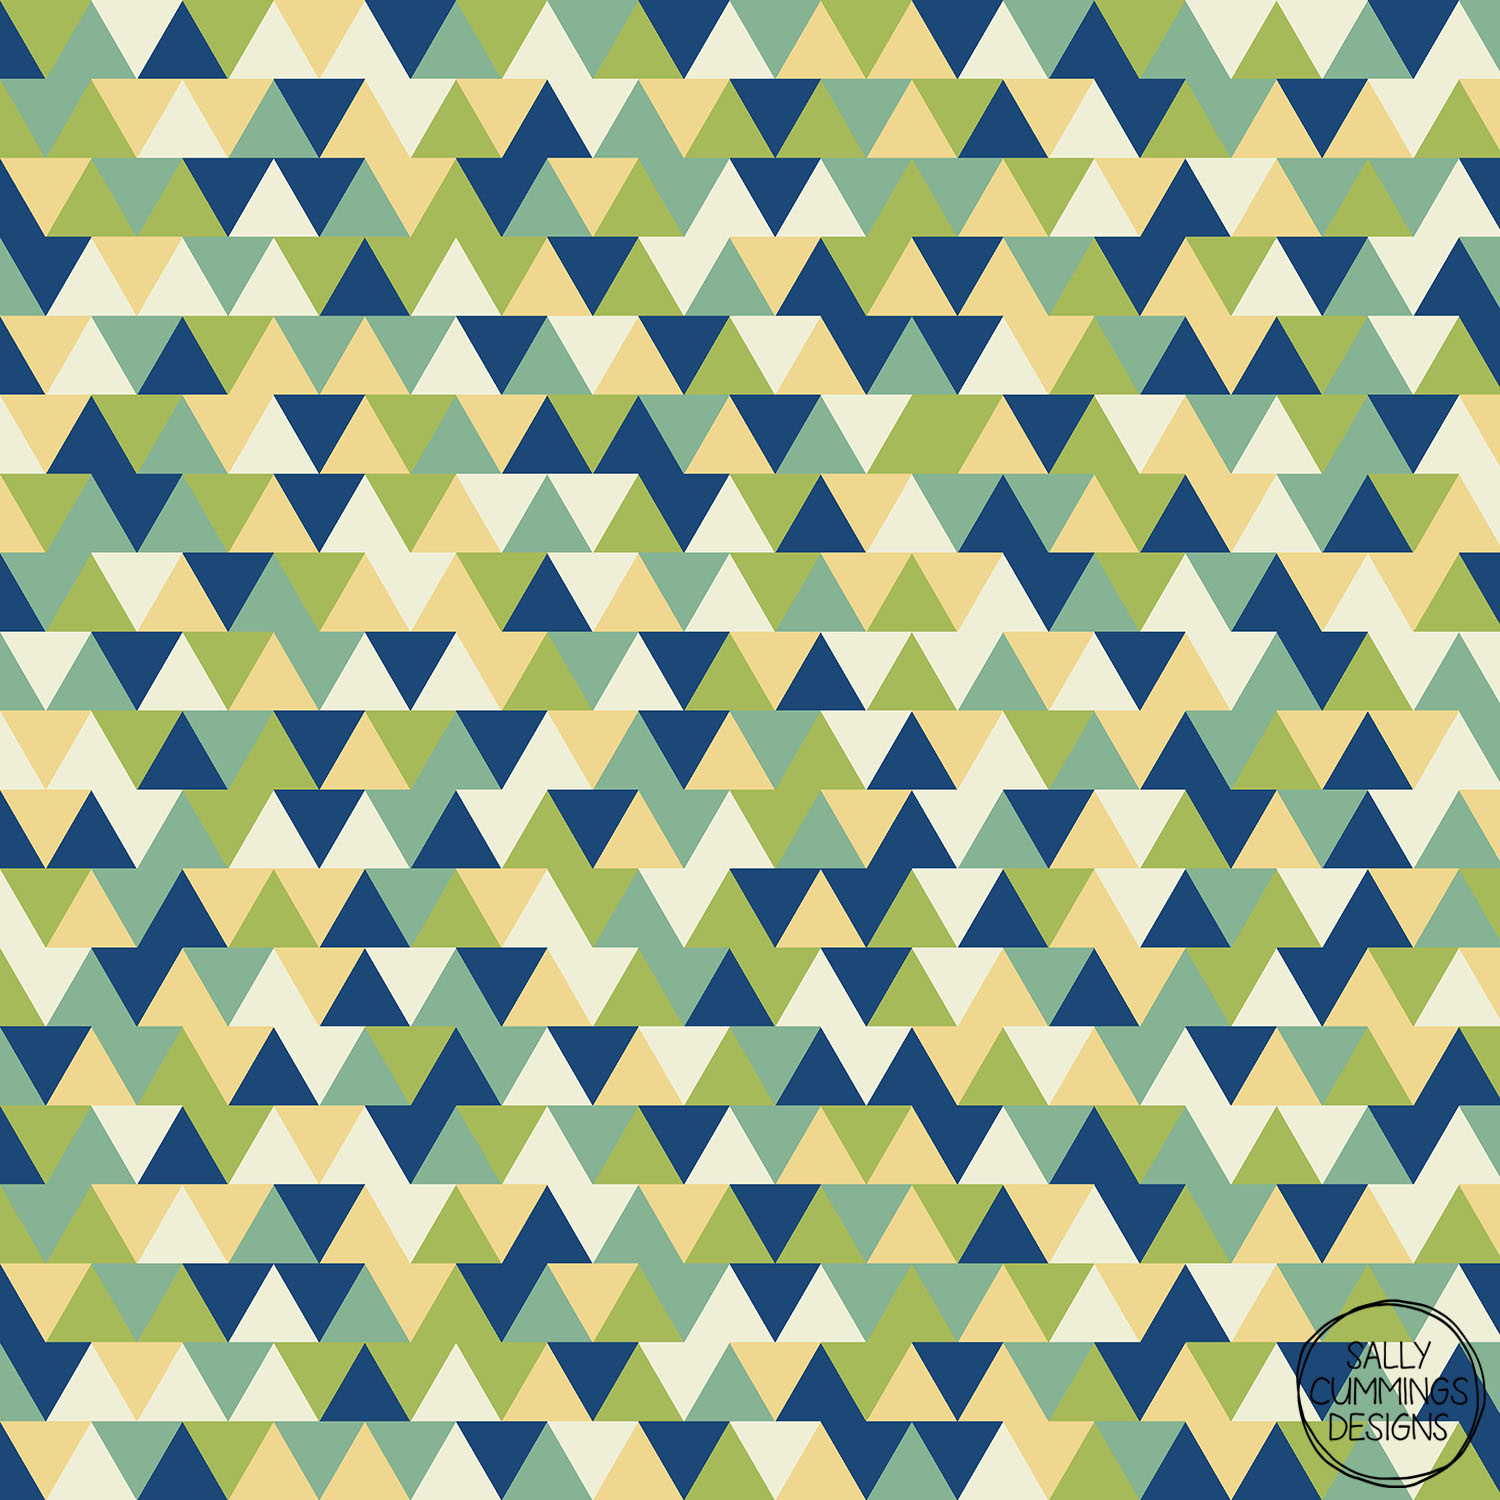 Sally Cummings Designs - Rockpool Triangles Pattern